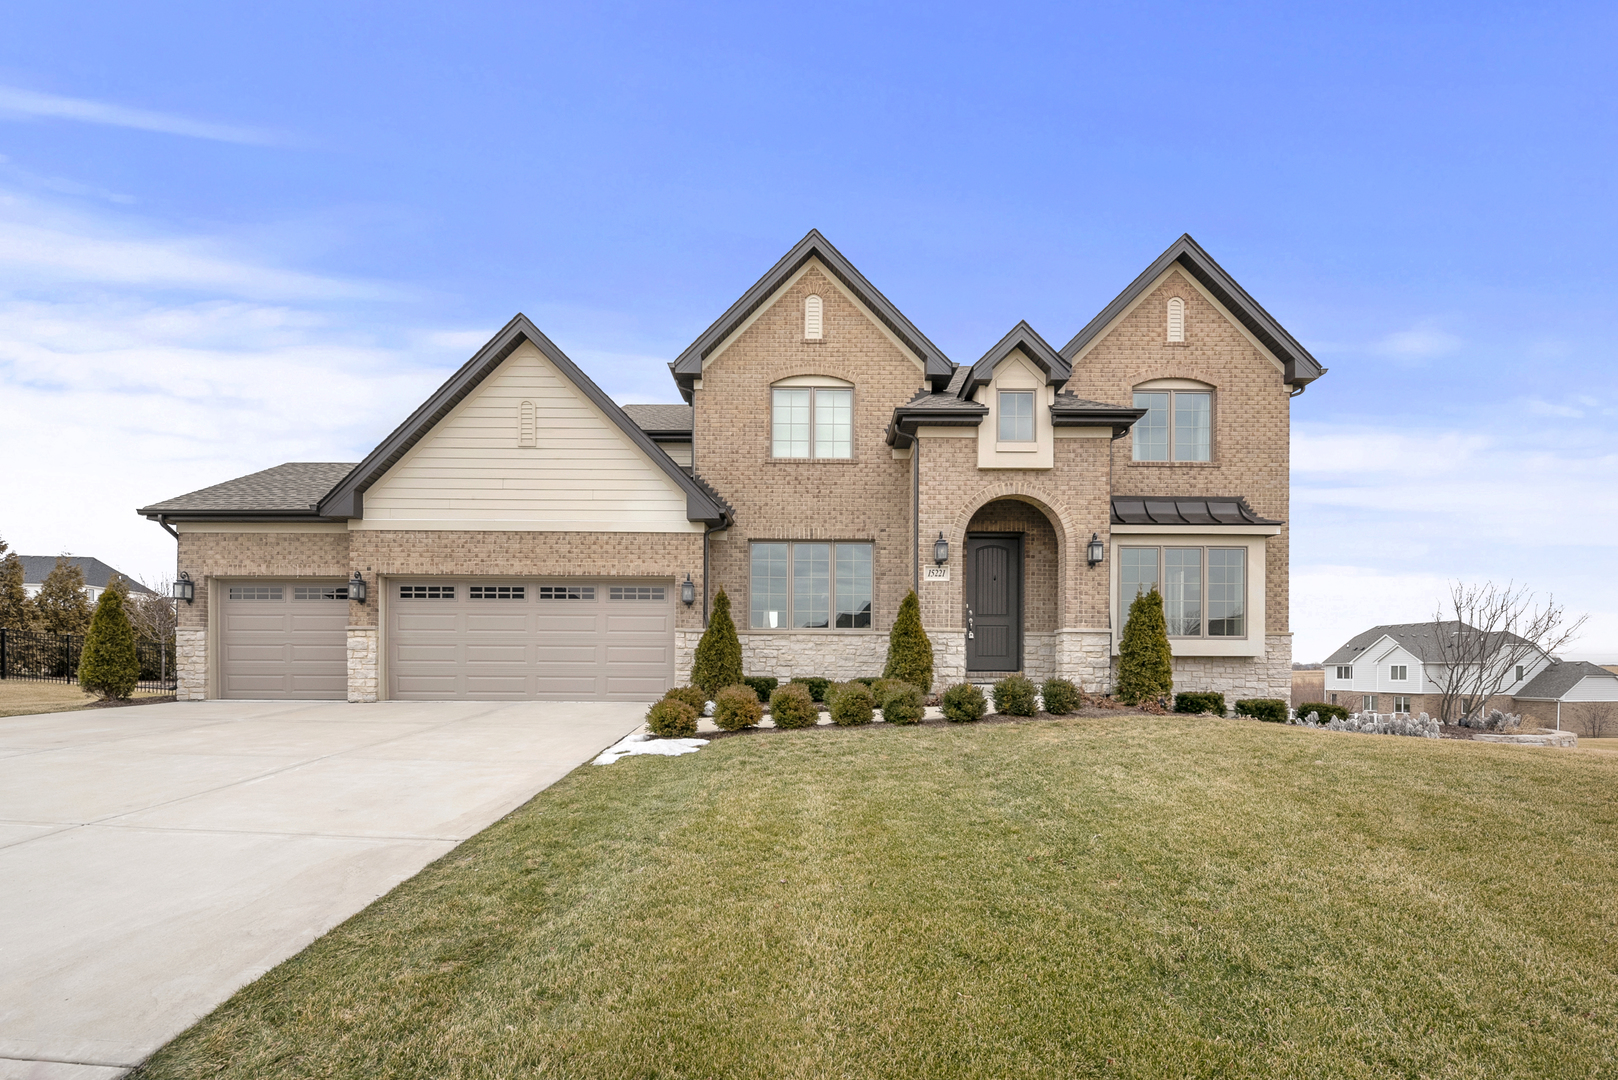 15221 South Nutmeg Avenue, Homer Glen in Will County, IL 60491 Home for Sale